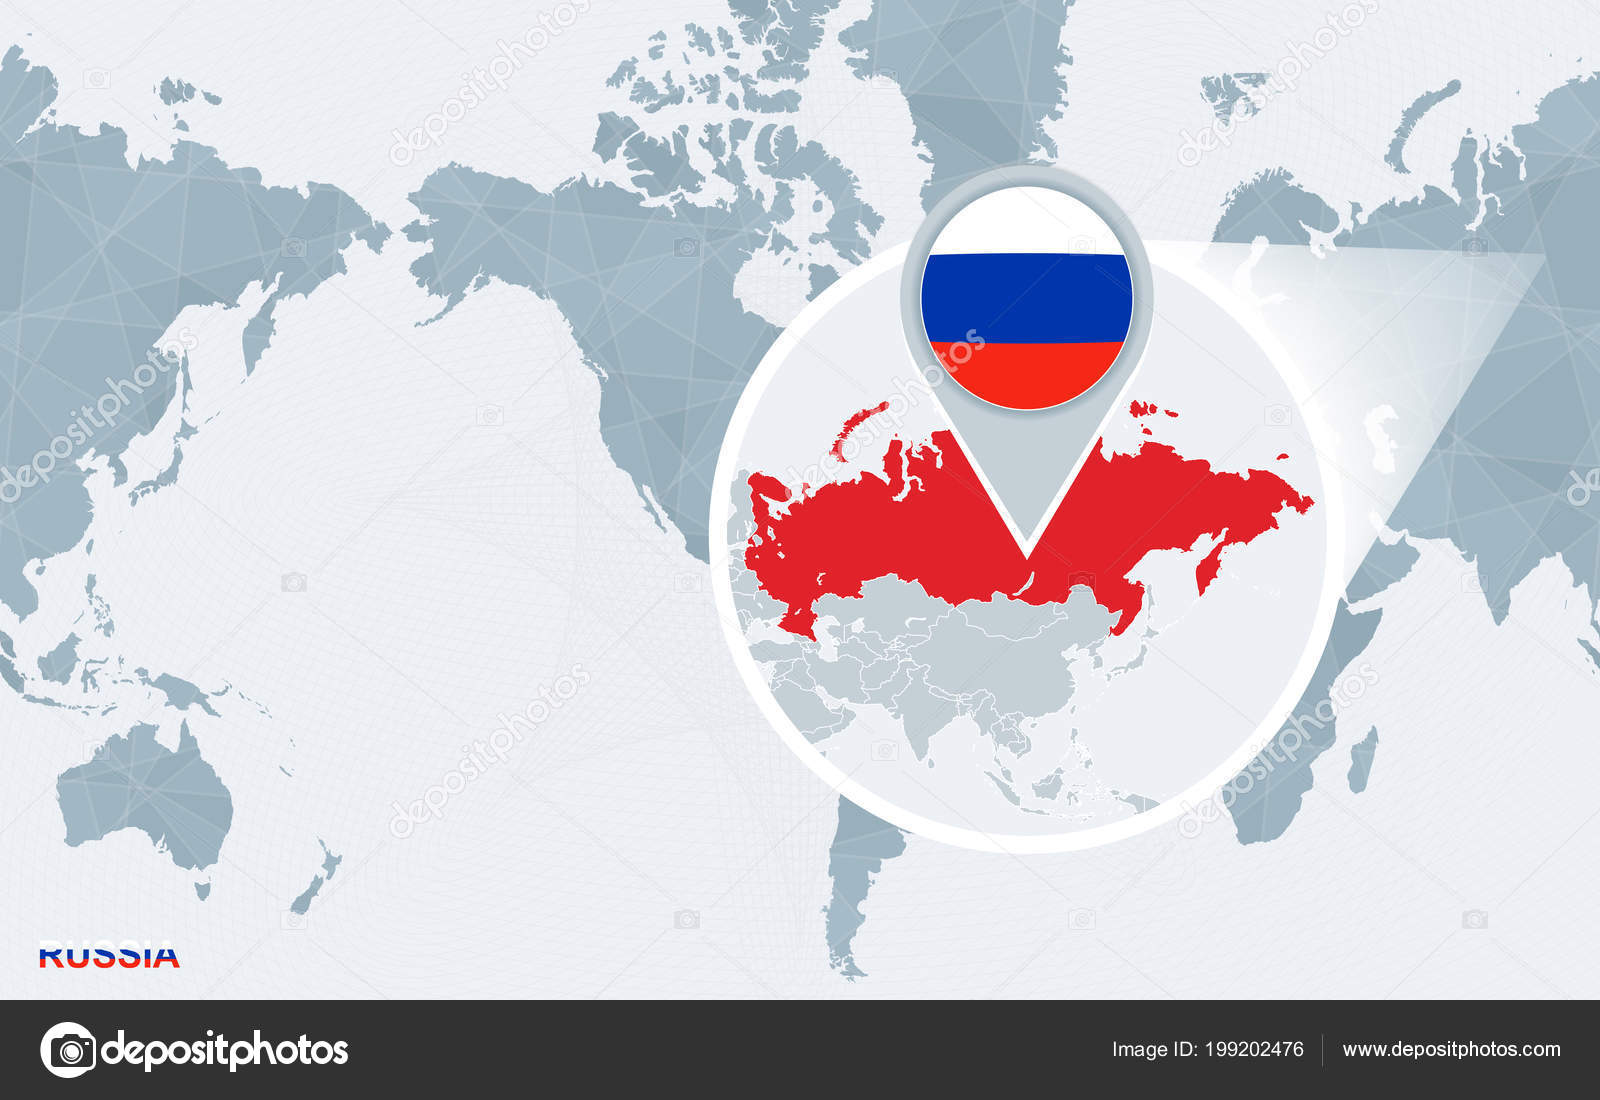 World map centered america magnified russia blue flag map russia world map centered america magnified russia blue flag map russia stock vector gumiabroncs Image collections